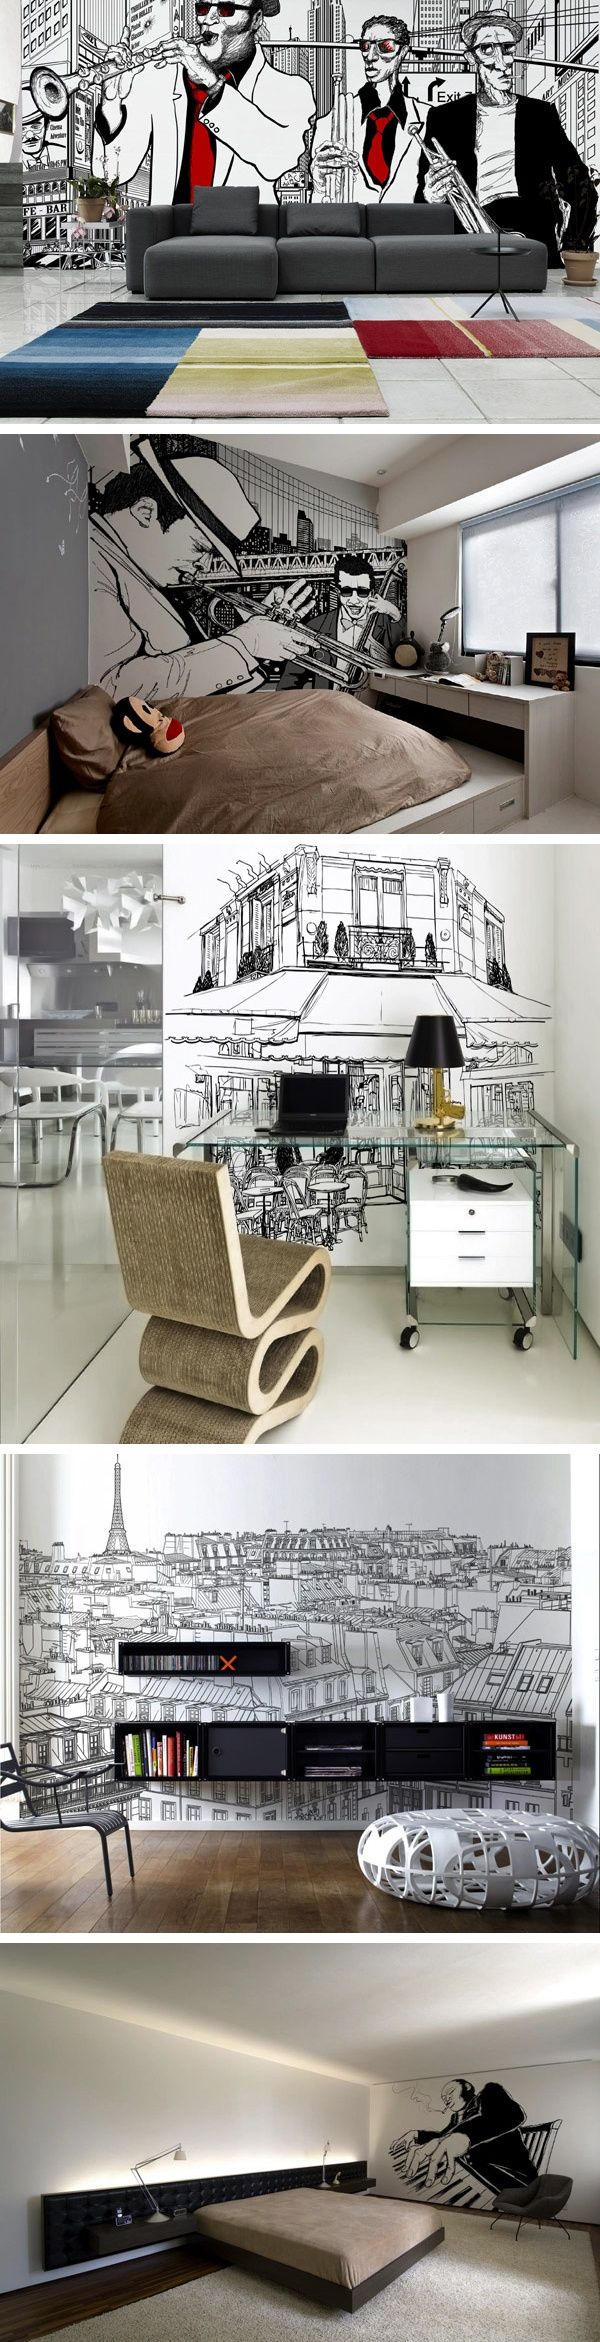 ♂ Artistic Interior Design - Adding Personality to Modern Interiors: City Never Sleeps Wall Murals by Pixers: